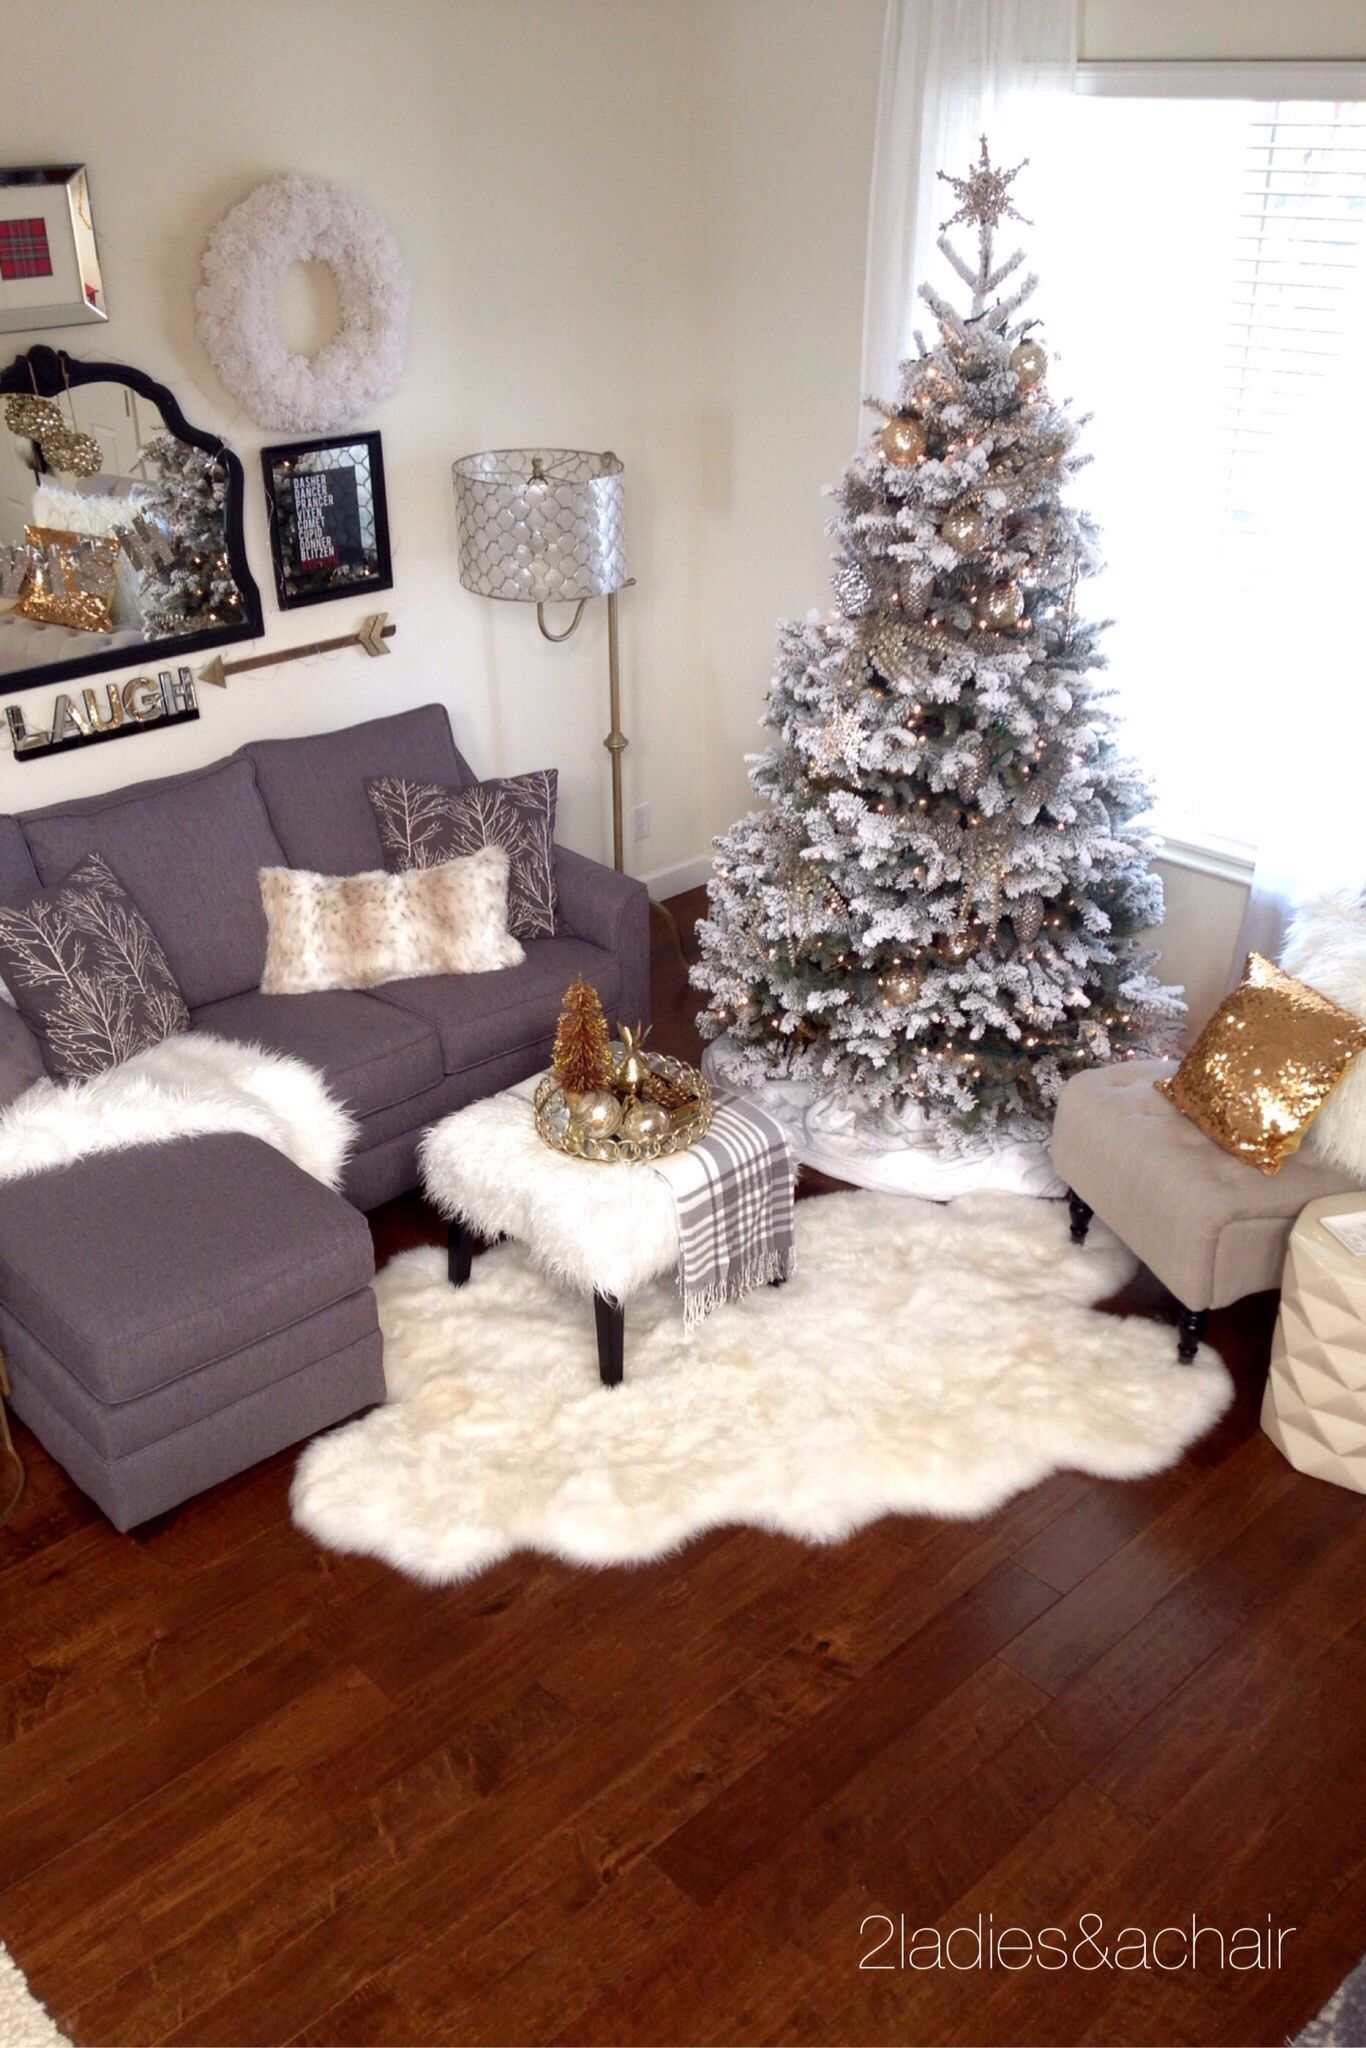 Christmas Decoration Ideas For Small Living Room Grey Carpet Feb 2 Easy Valentine S Day Table Decor The Eden Home Pinterest This Is Perfect Entertaining Guests Holiday Thanks Go To Homegoods Where We Bought All These Fabulous Pieces Sponsored By